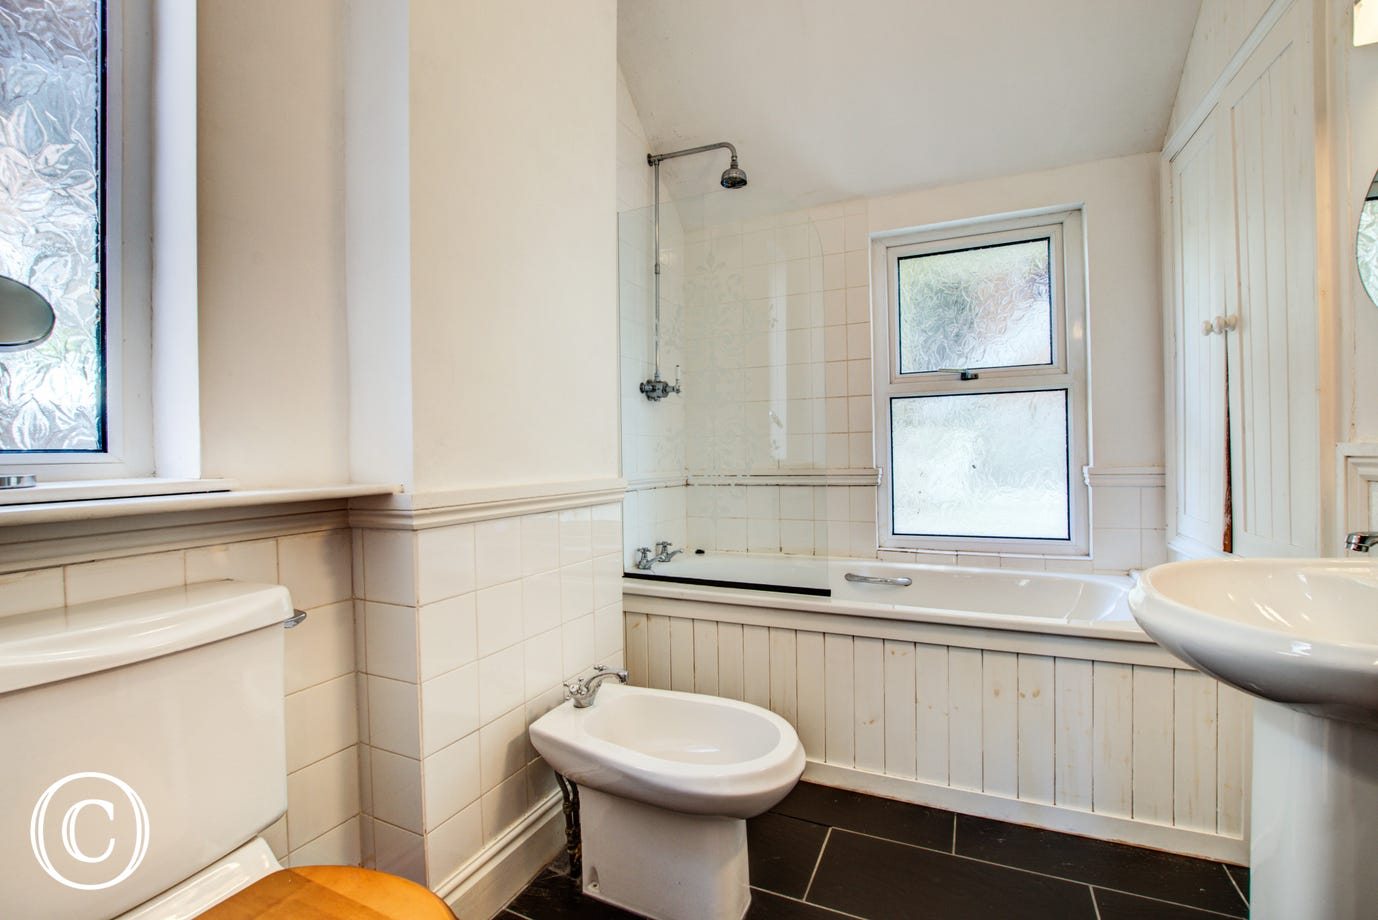 The main family bathroom is on the first floor has WC, bidet, bath, shower over bath and wash basin.